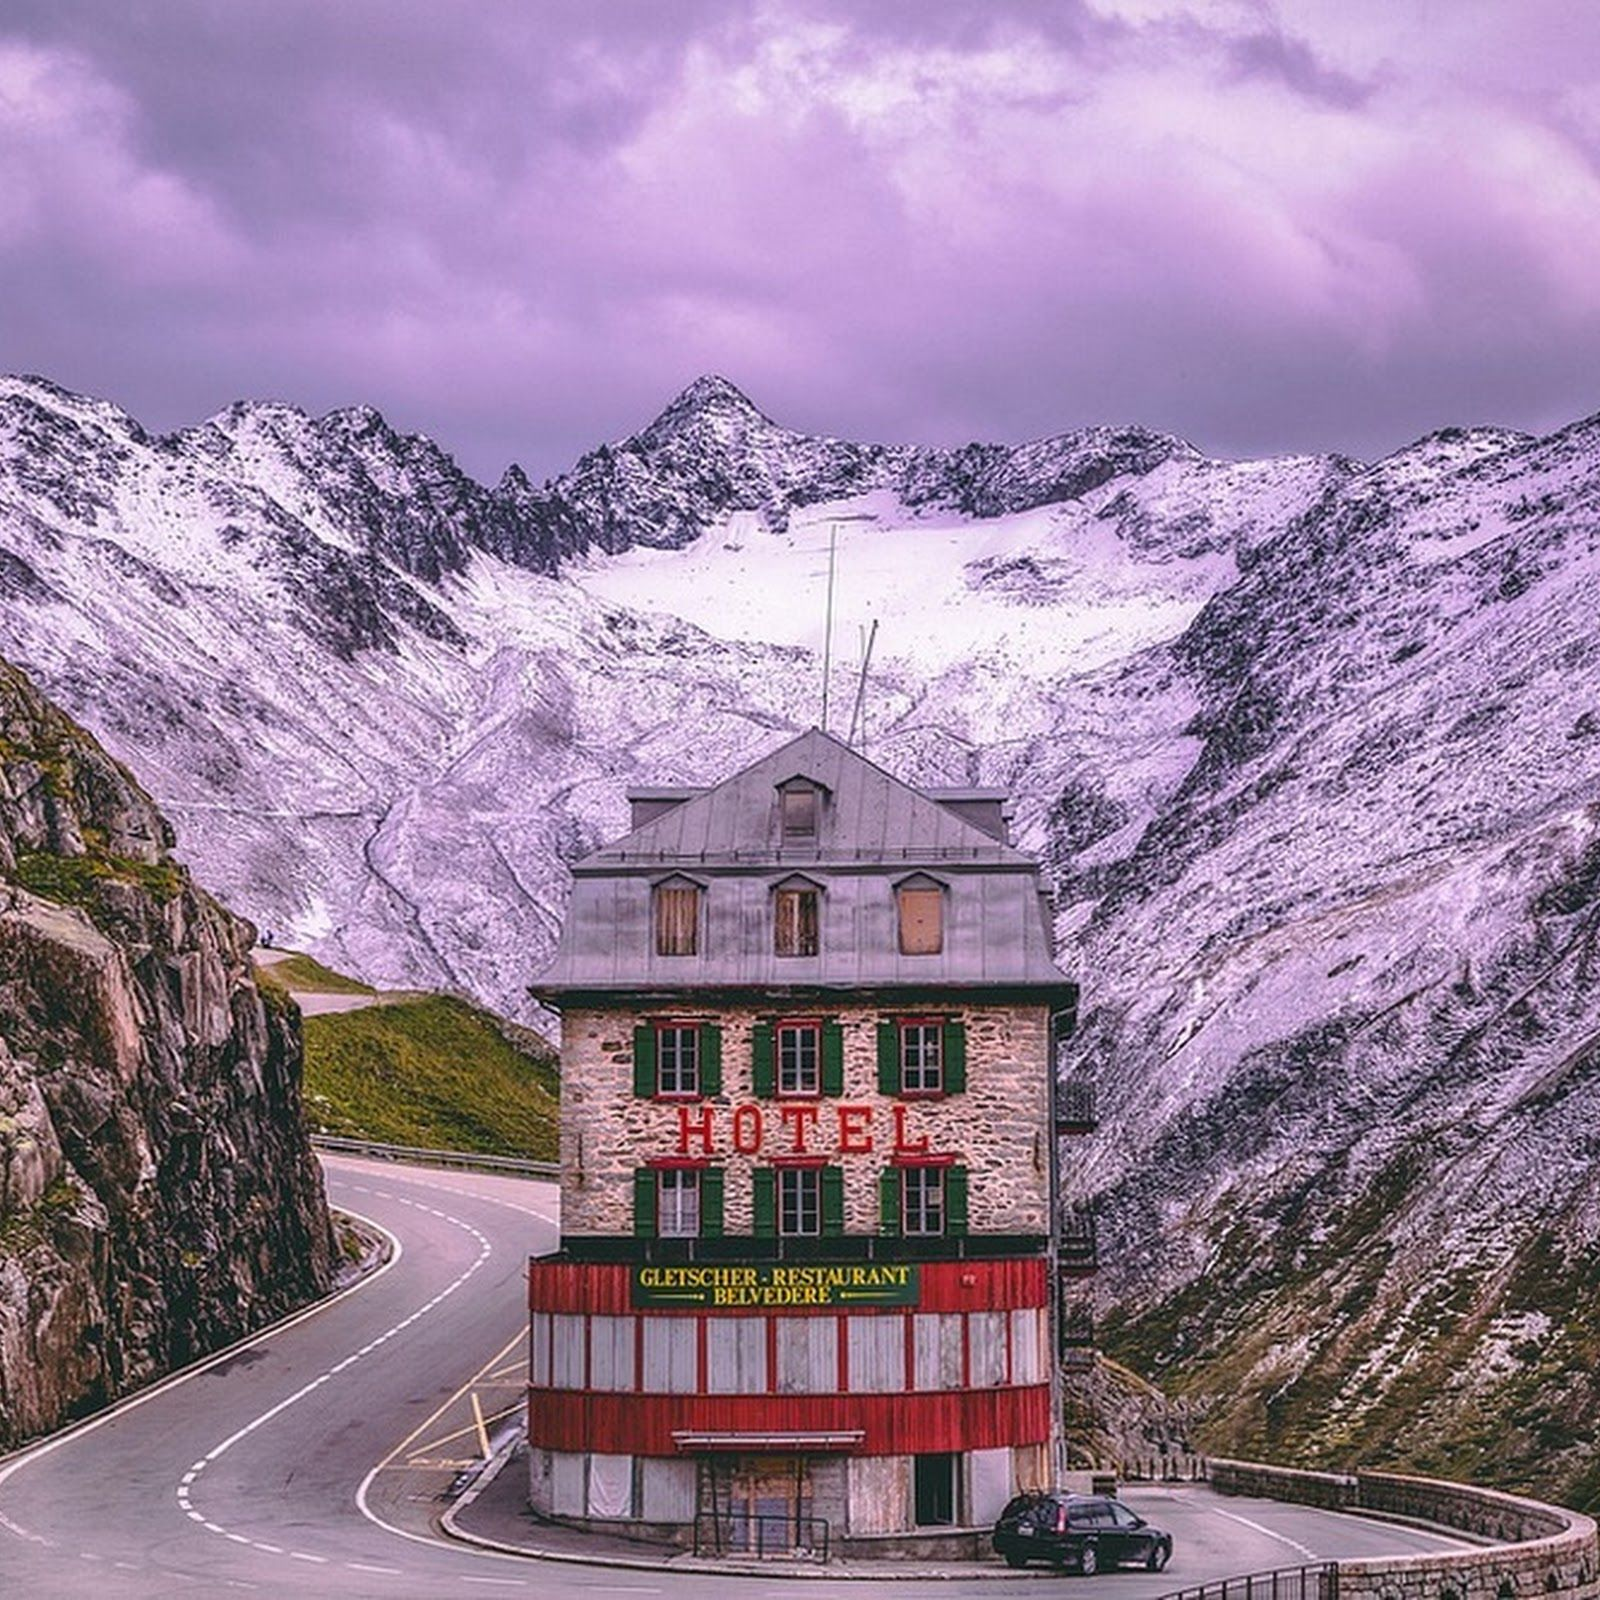 Hotel Belvédère: The Iconic Swiss Hotel On The Edge Of The Rhone Glacier